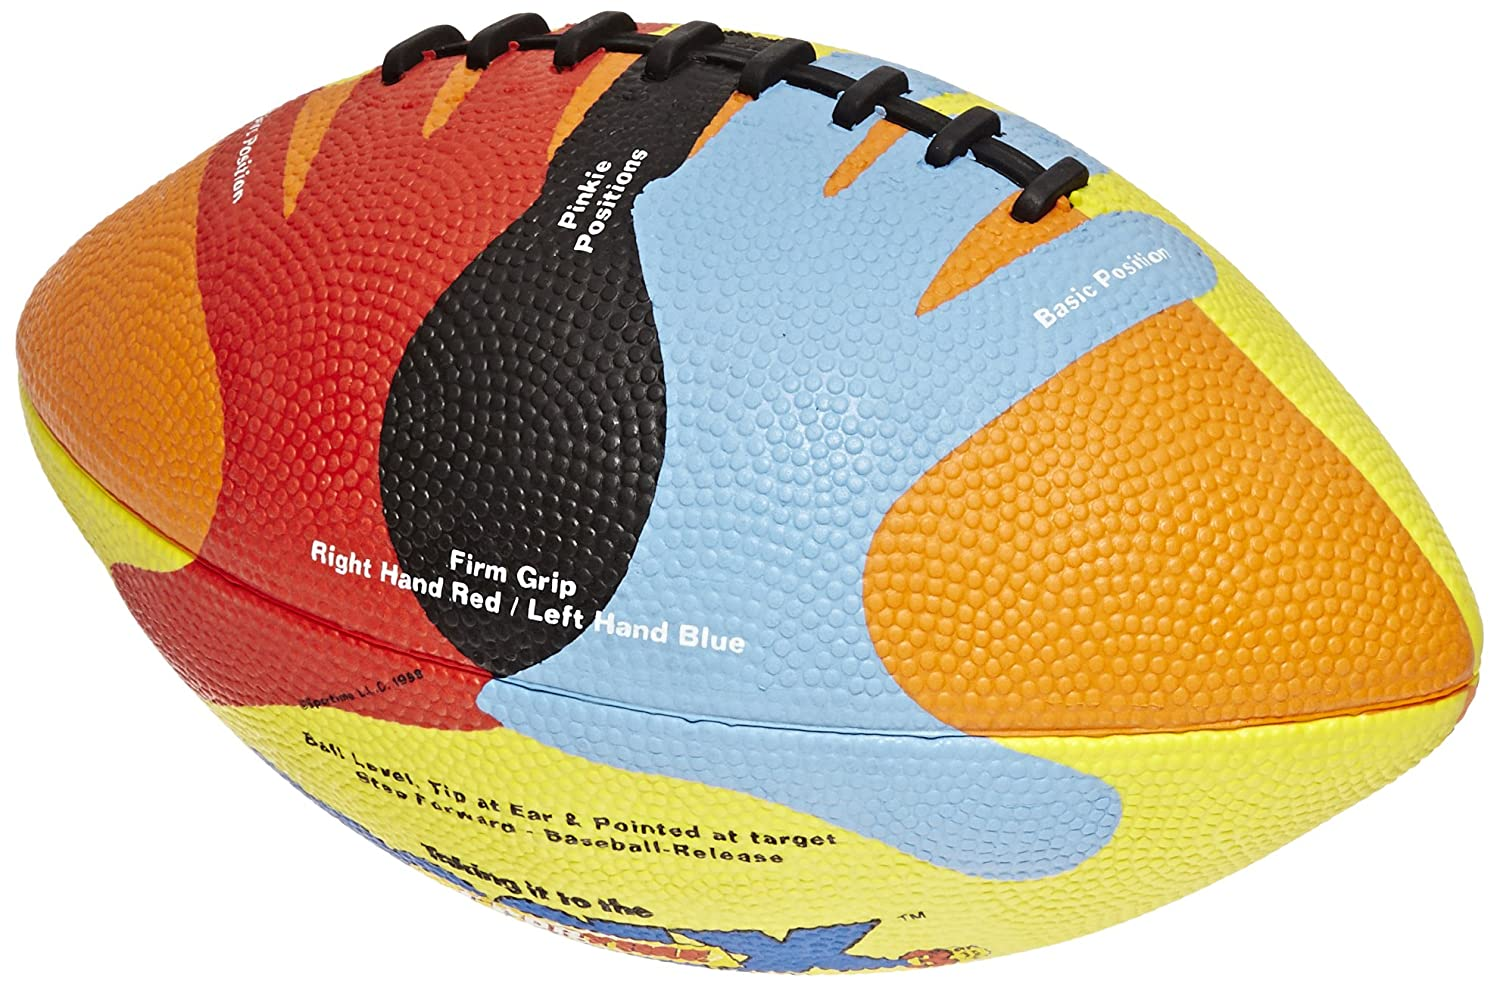 SportimeMax Hands-On Junior Size 6 Football, Multiple Colors